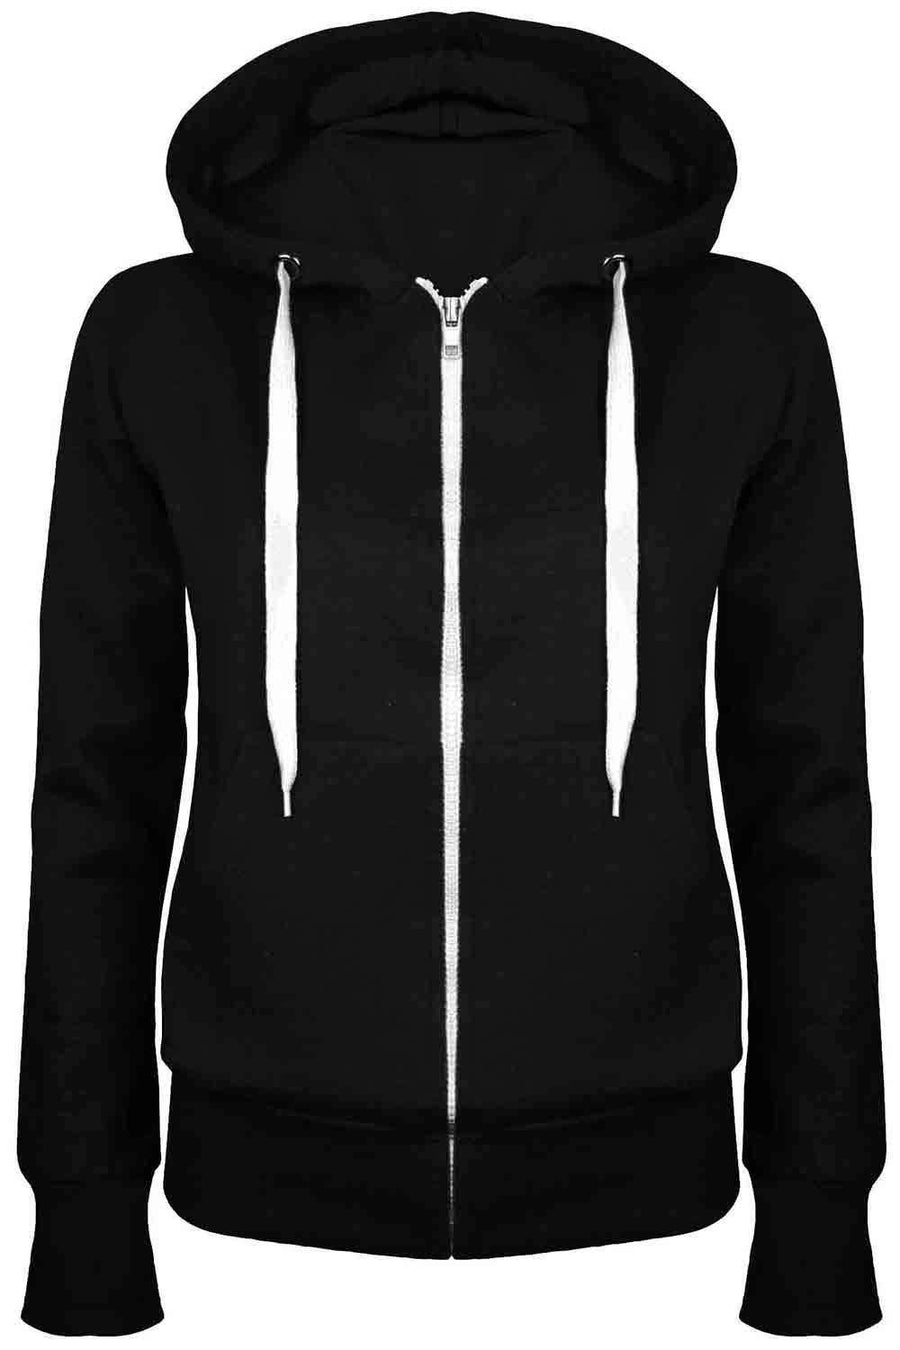 Zara Fleece Line Zip Up Hoodie - bejealous-com